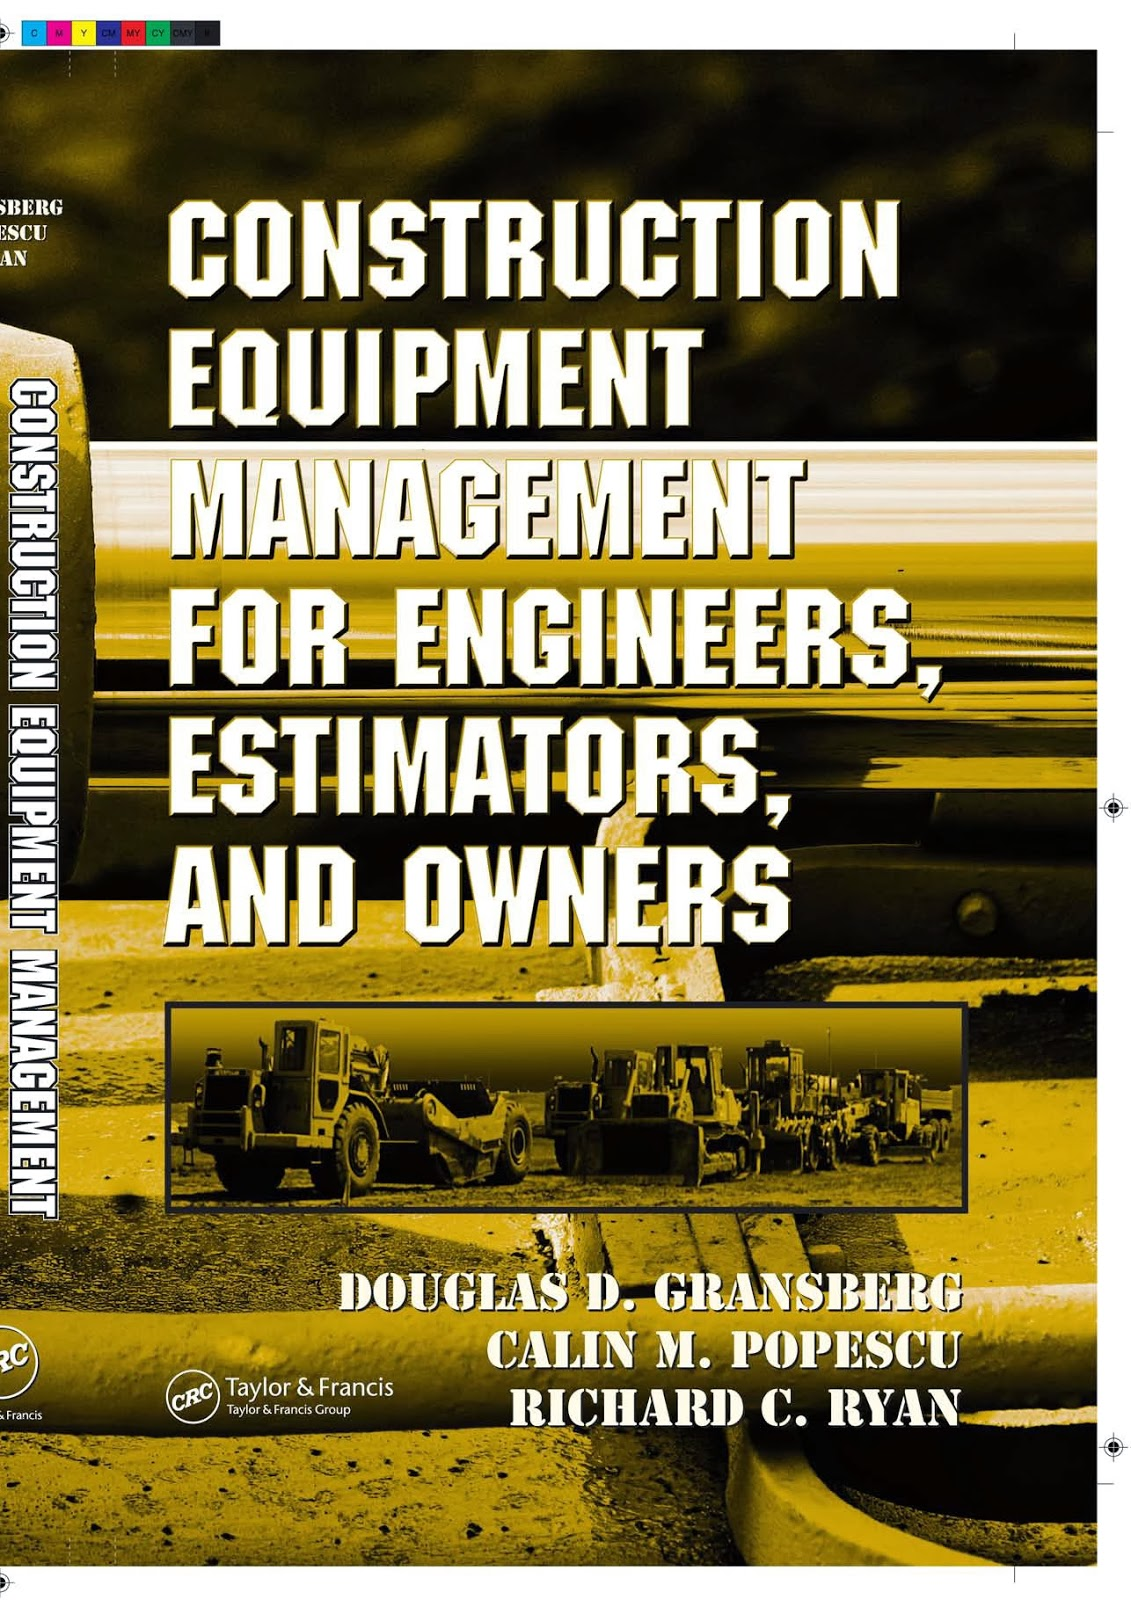 Construction Equipment Management for Engineers, Estimators and Owners by Douglas D. Gransberg, Calin M. Popescu, Richard C. Ryan